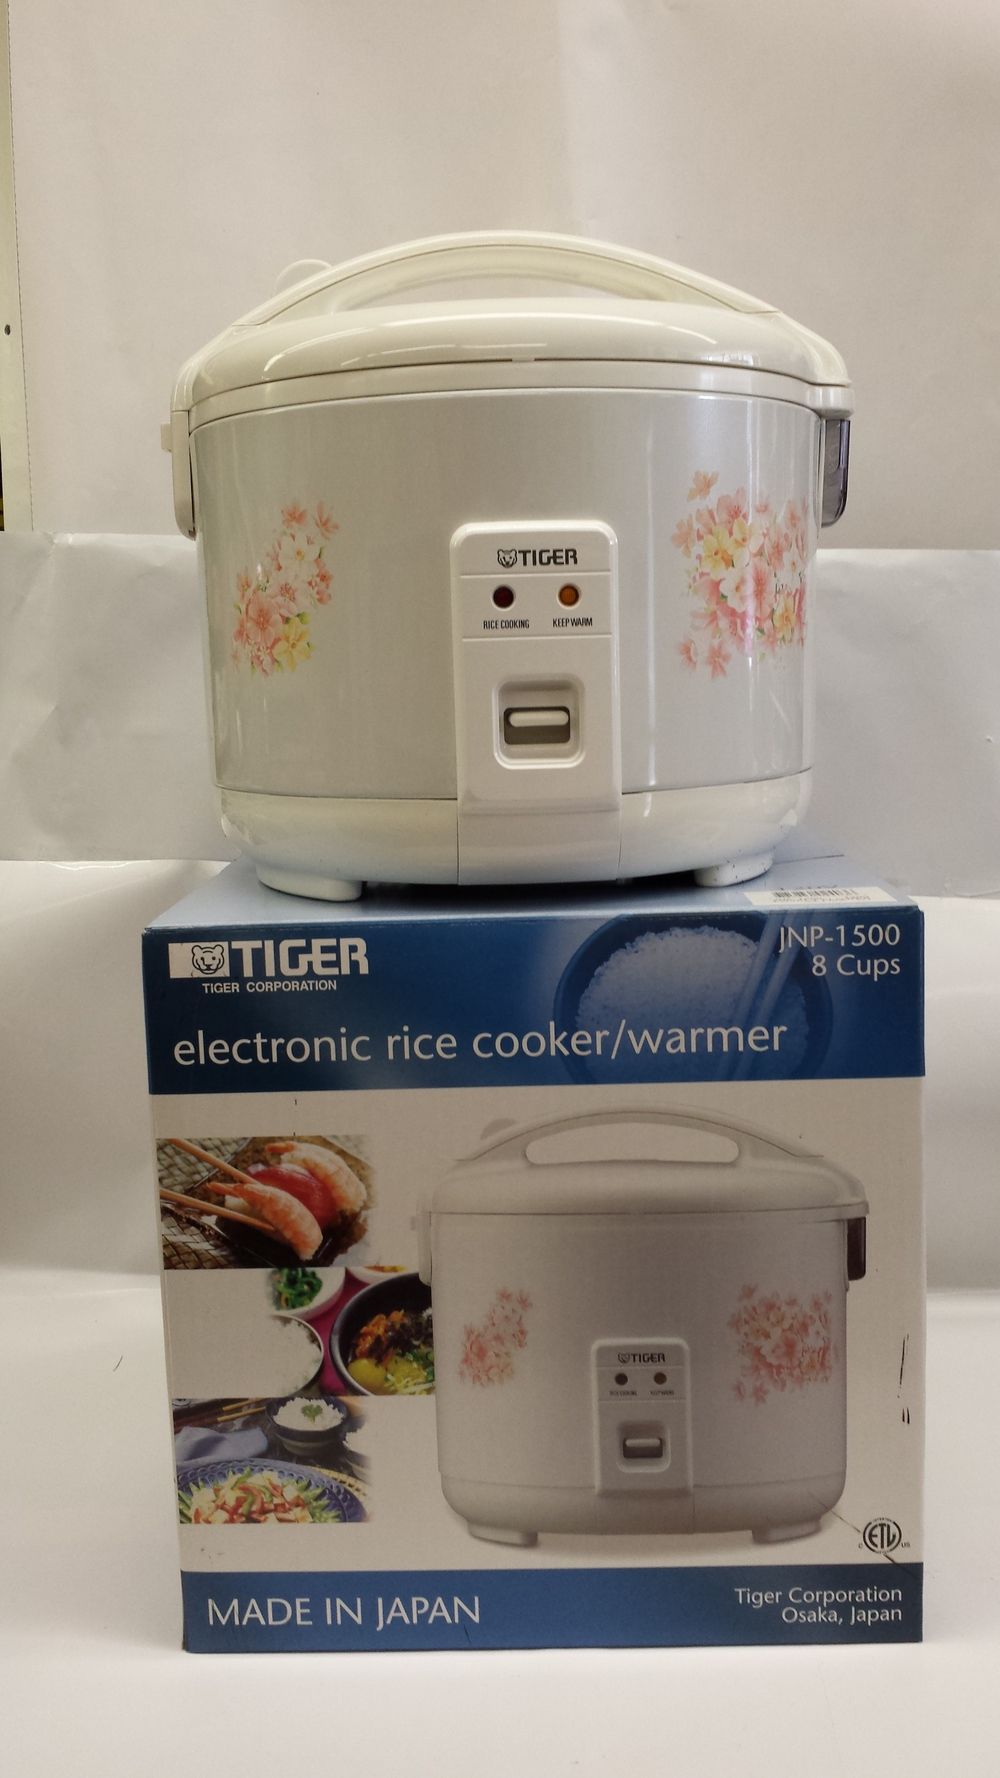 Rice Cooker   Tiger   RC28010 4x3 cups  RC28012 4x4 cups  RC28014 4x5.5 cups  RC28016 4x8 cups  RC28019 4x10 cups  RC28021 2x15 cups  RC28023 20 cups